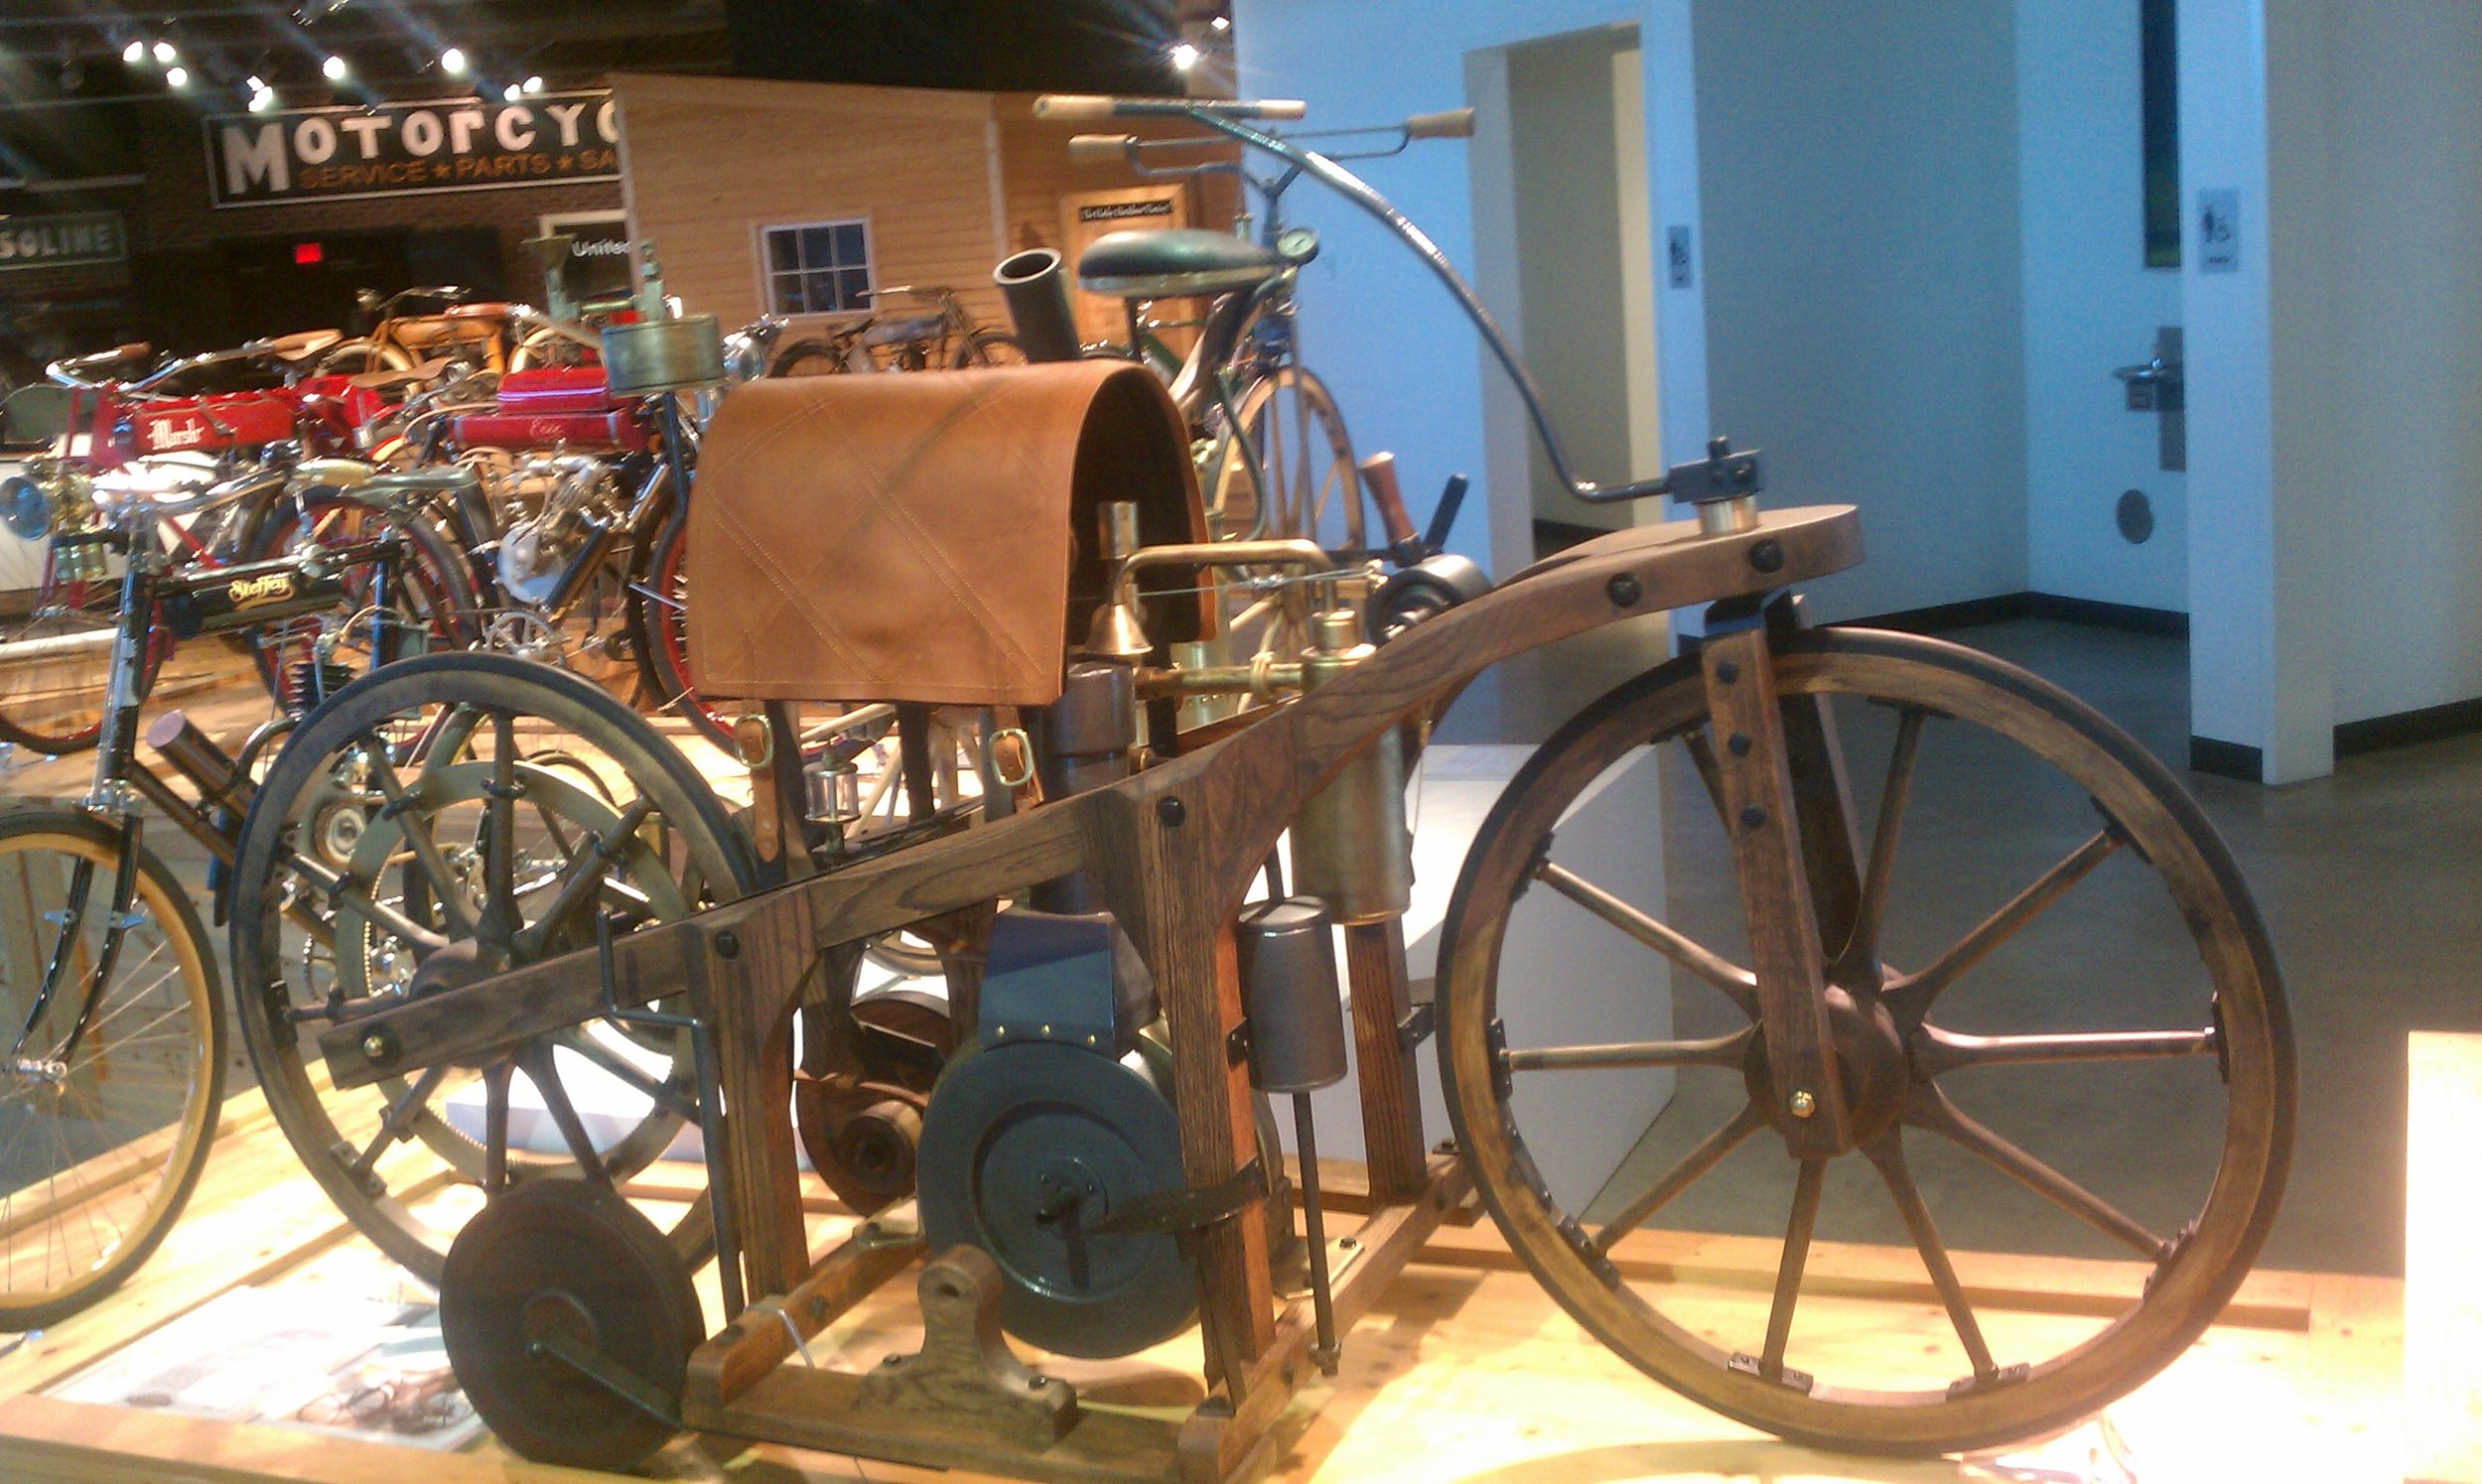 Barber Motorsports Museum in Birmingham, Alabama - My first time to see a replica of the 1885 Daimler Reitwagen, an impressive motorcycle-centric museum designed with sweeping views of the entire facility. Definitely a MUST visit for any motorcycle enthusiasts.